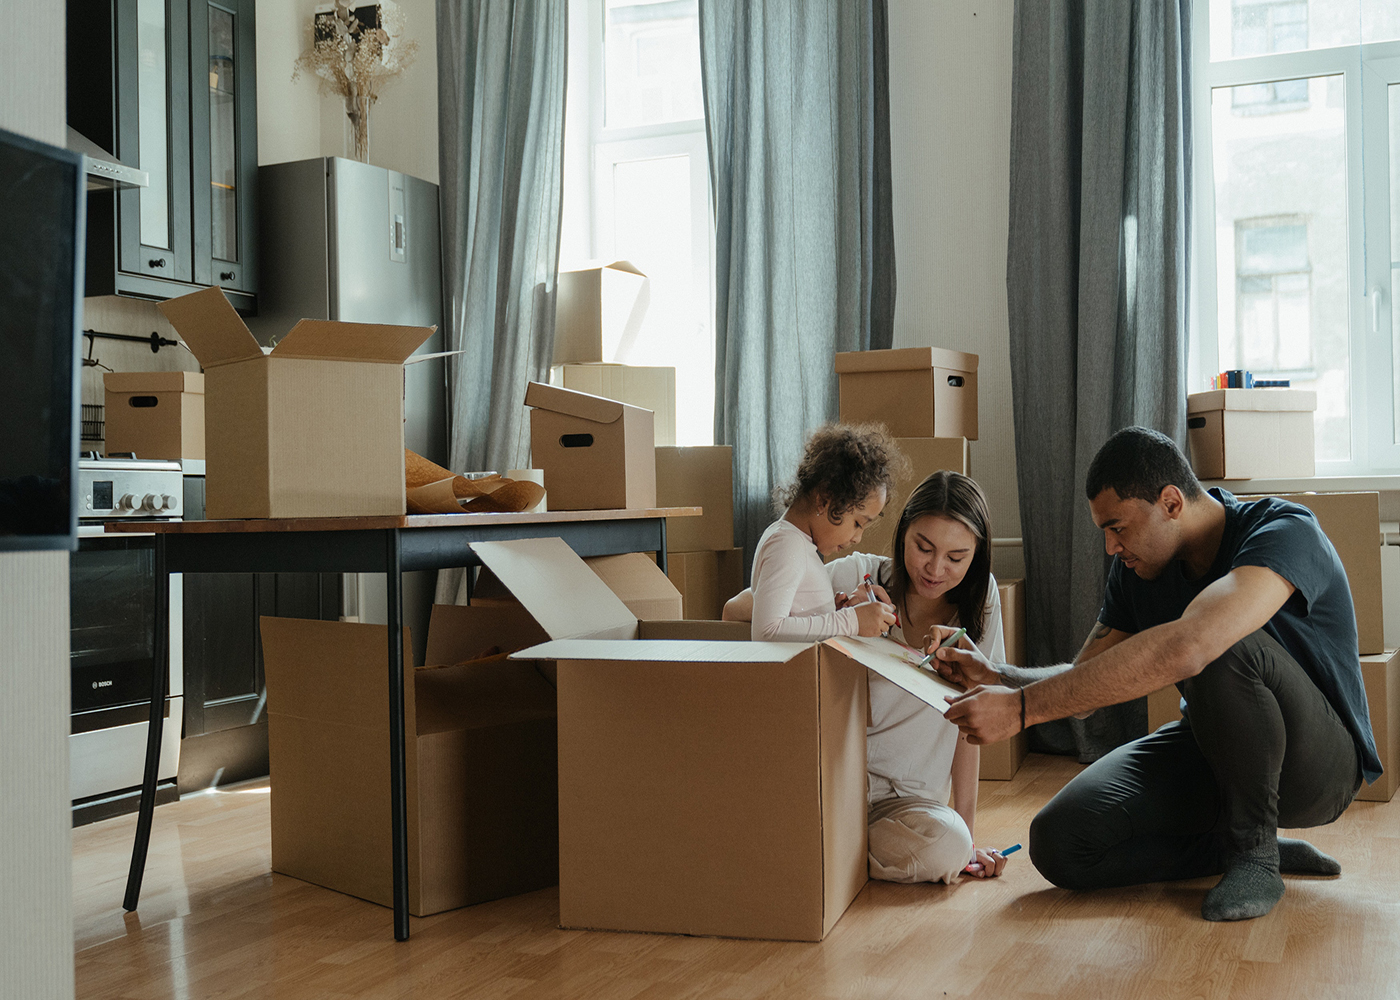 Canada's Housing Market Is Predicted to Boom in 2021. Is Now the Time to Buy, or Should You Keep Renting? Thumbnail